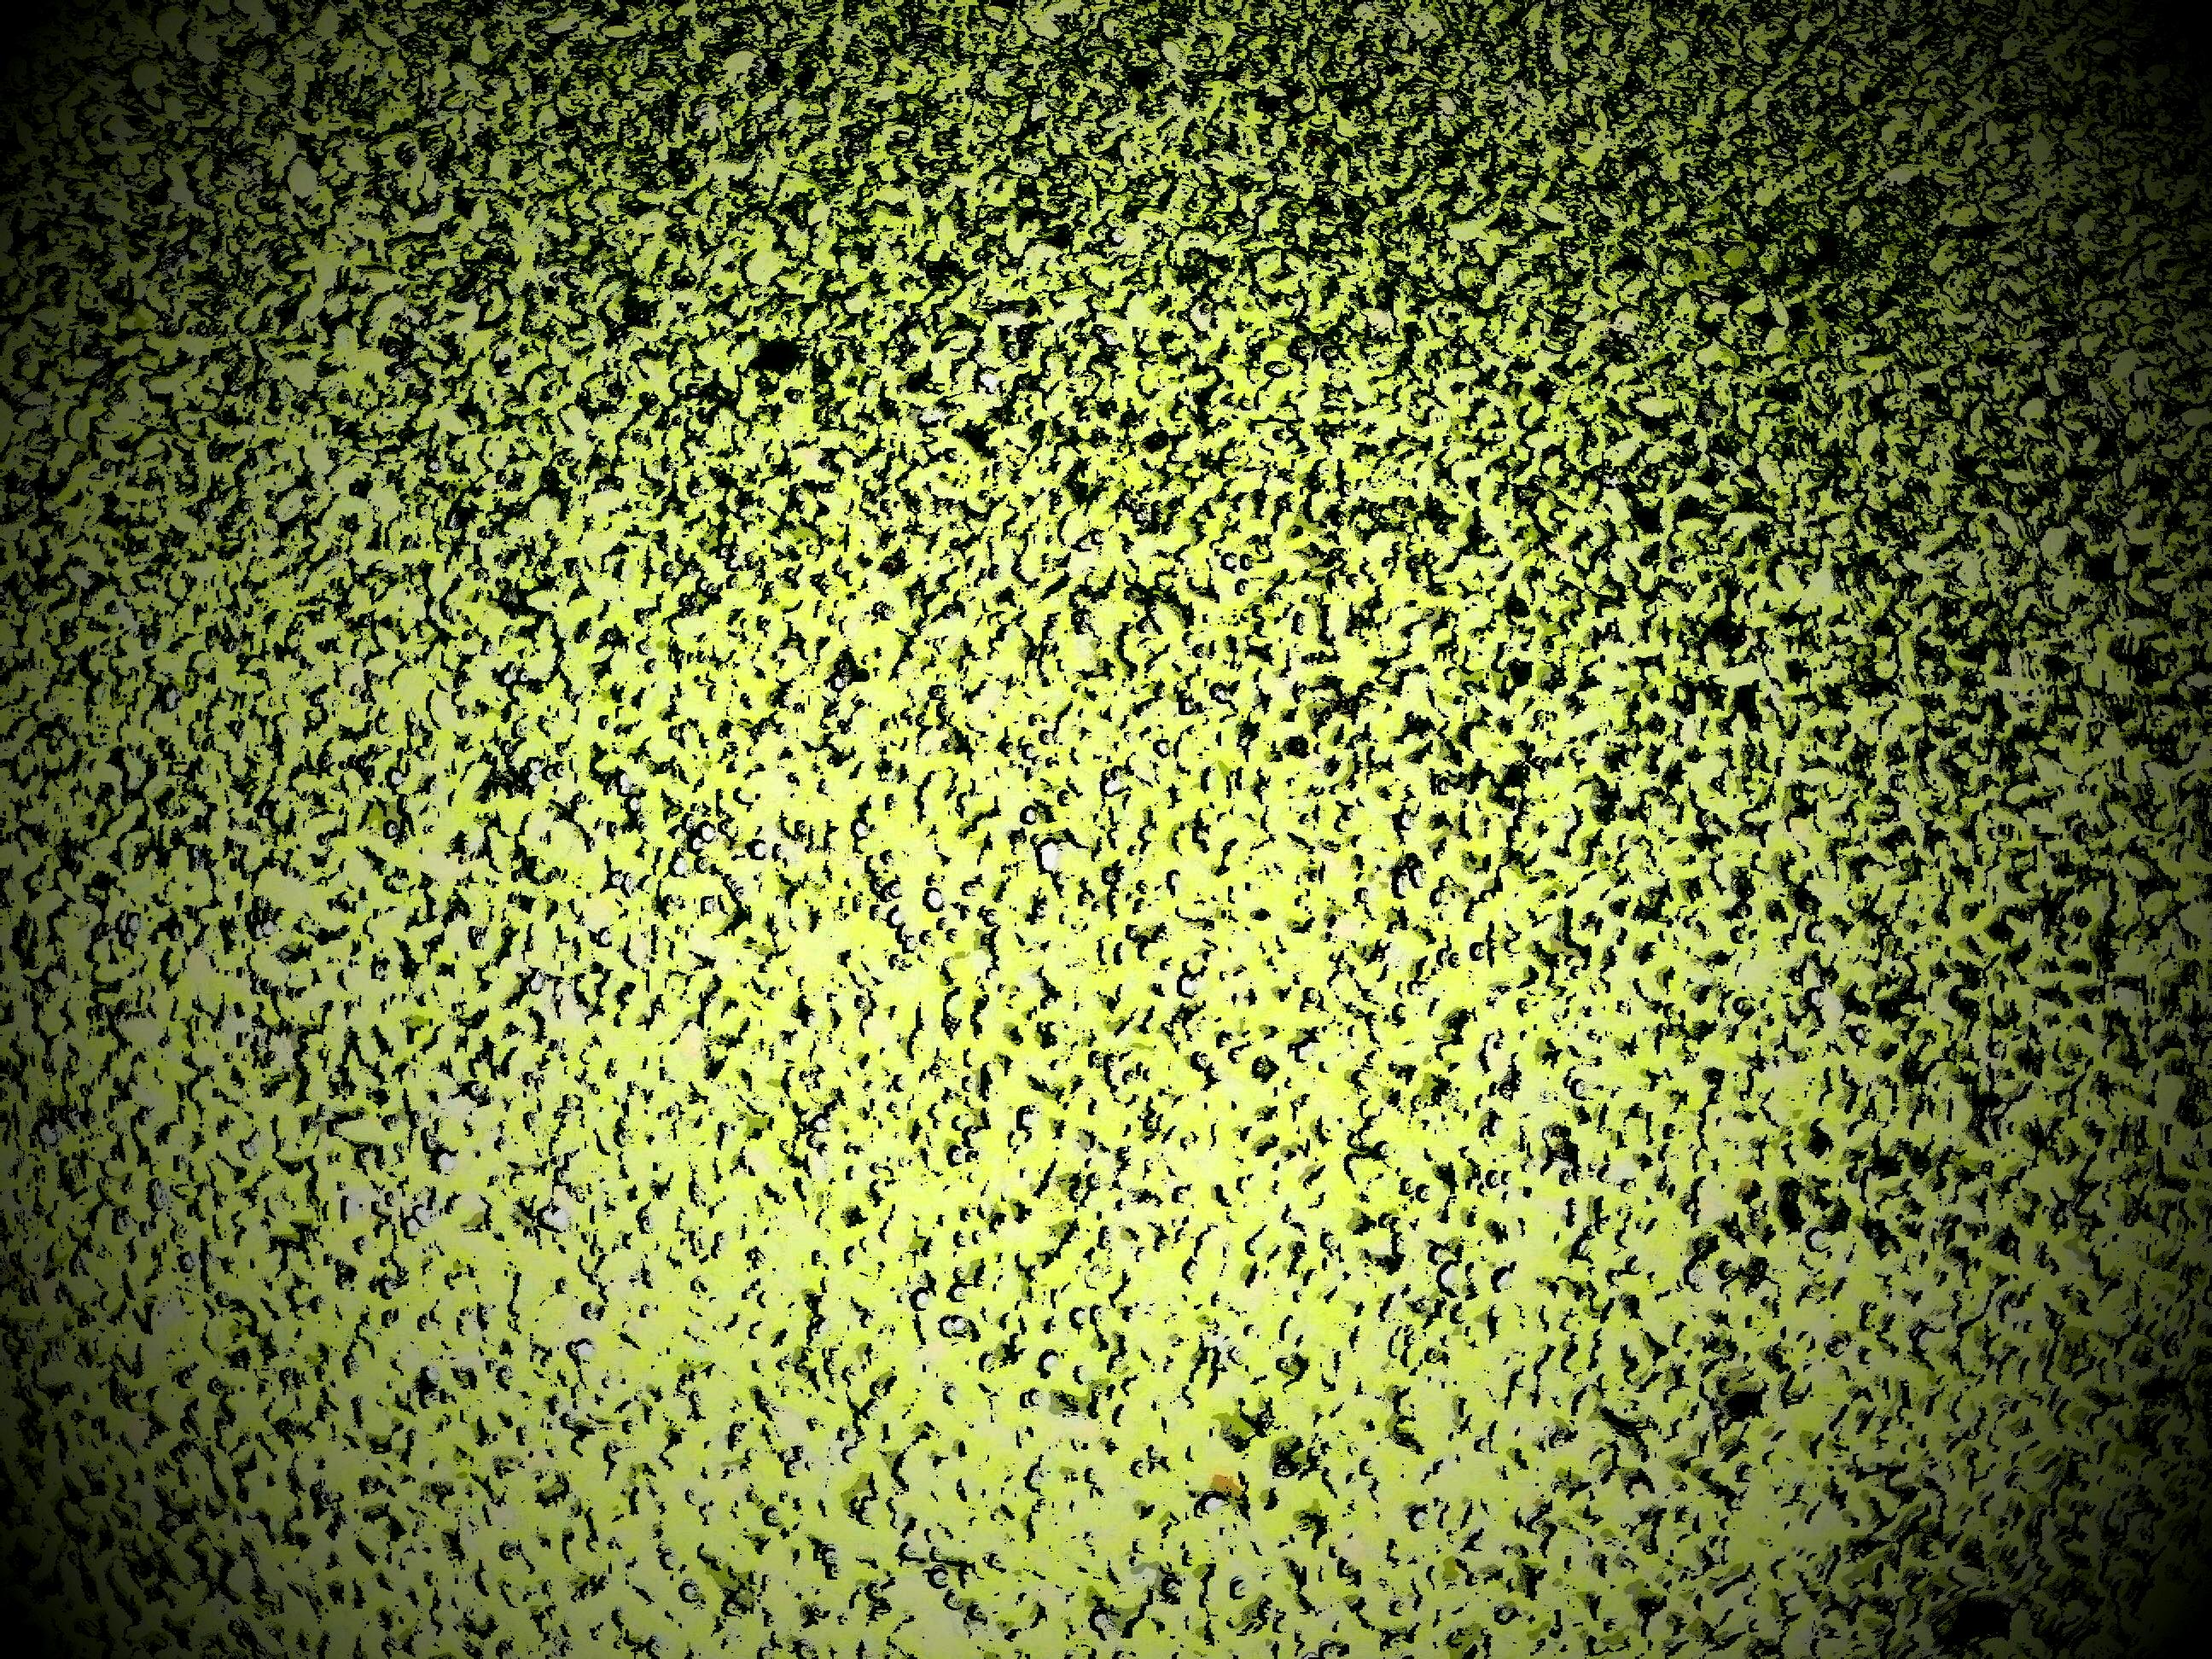 Green speckled vignette background photo